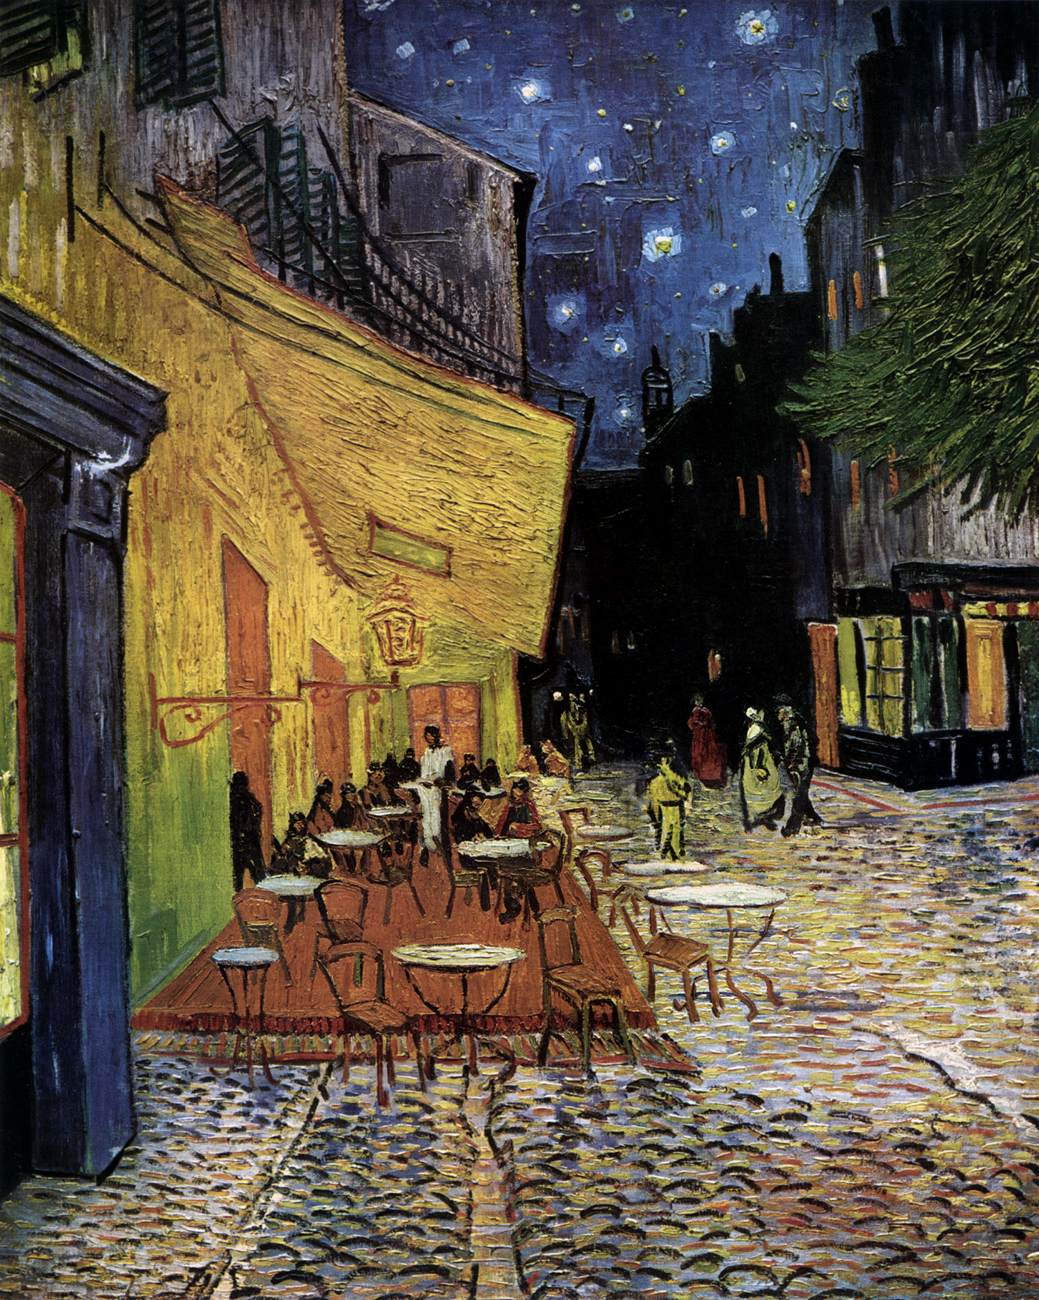 Caf terrace on the place du forum arles at night by gogh for Terrace night